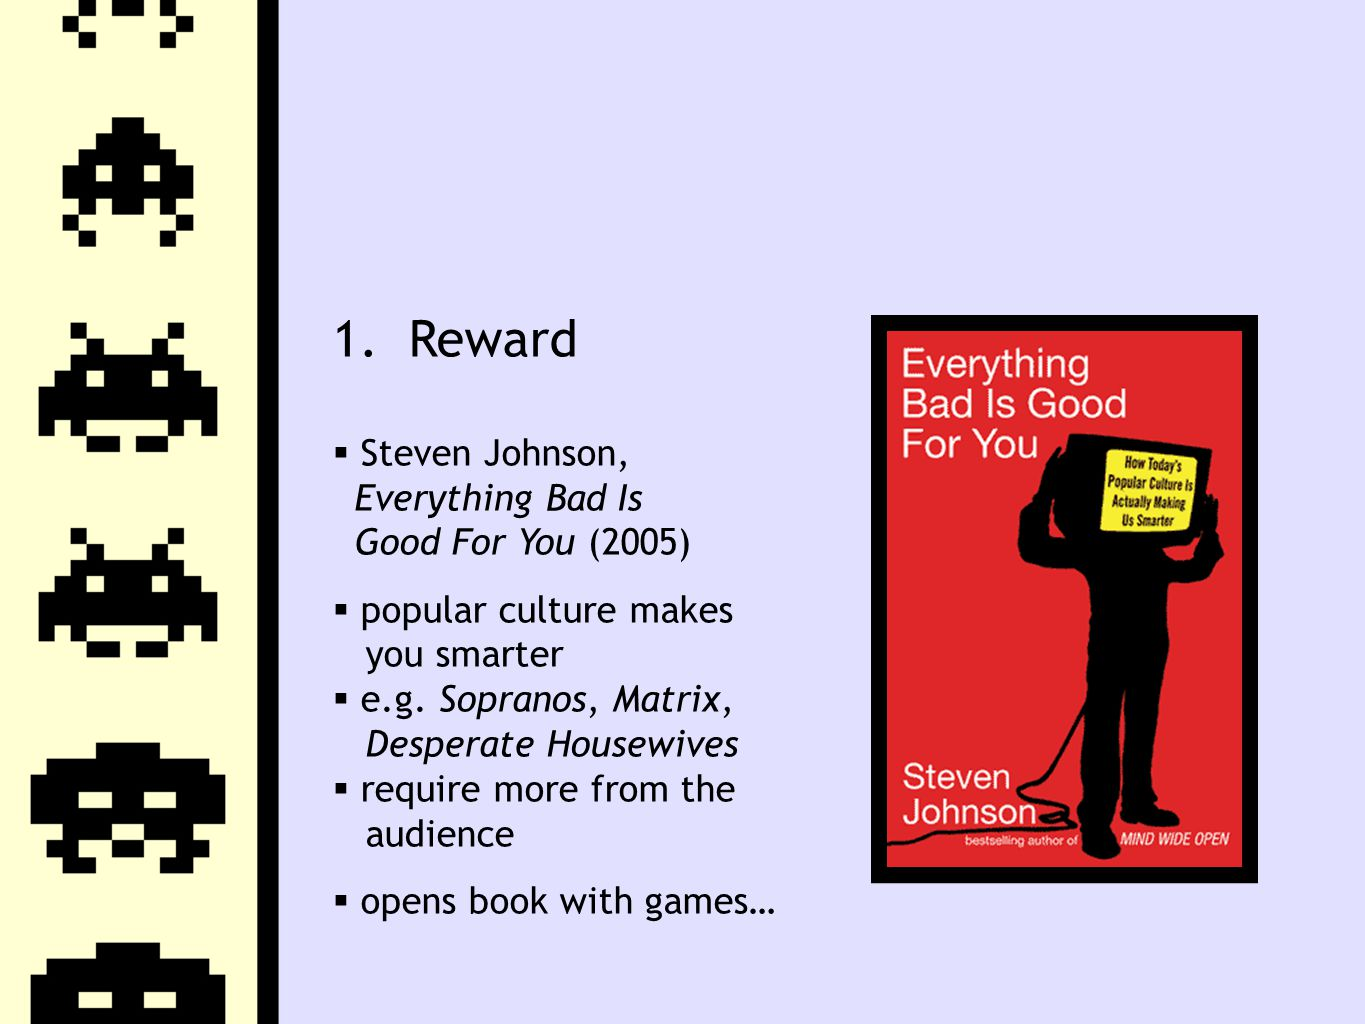 1. Reward  Steven Johnson, Everything Bad Is Good For You (2005)  popular culture makes you smarter  e.g. Sopranos, Matrix, Desperate Housewives 